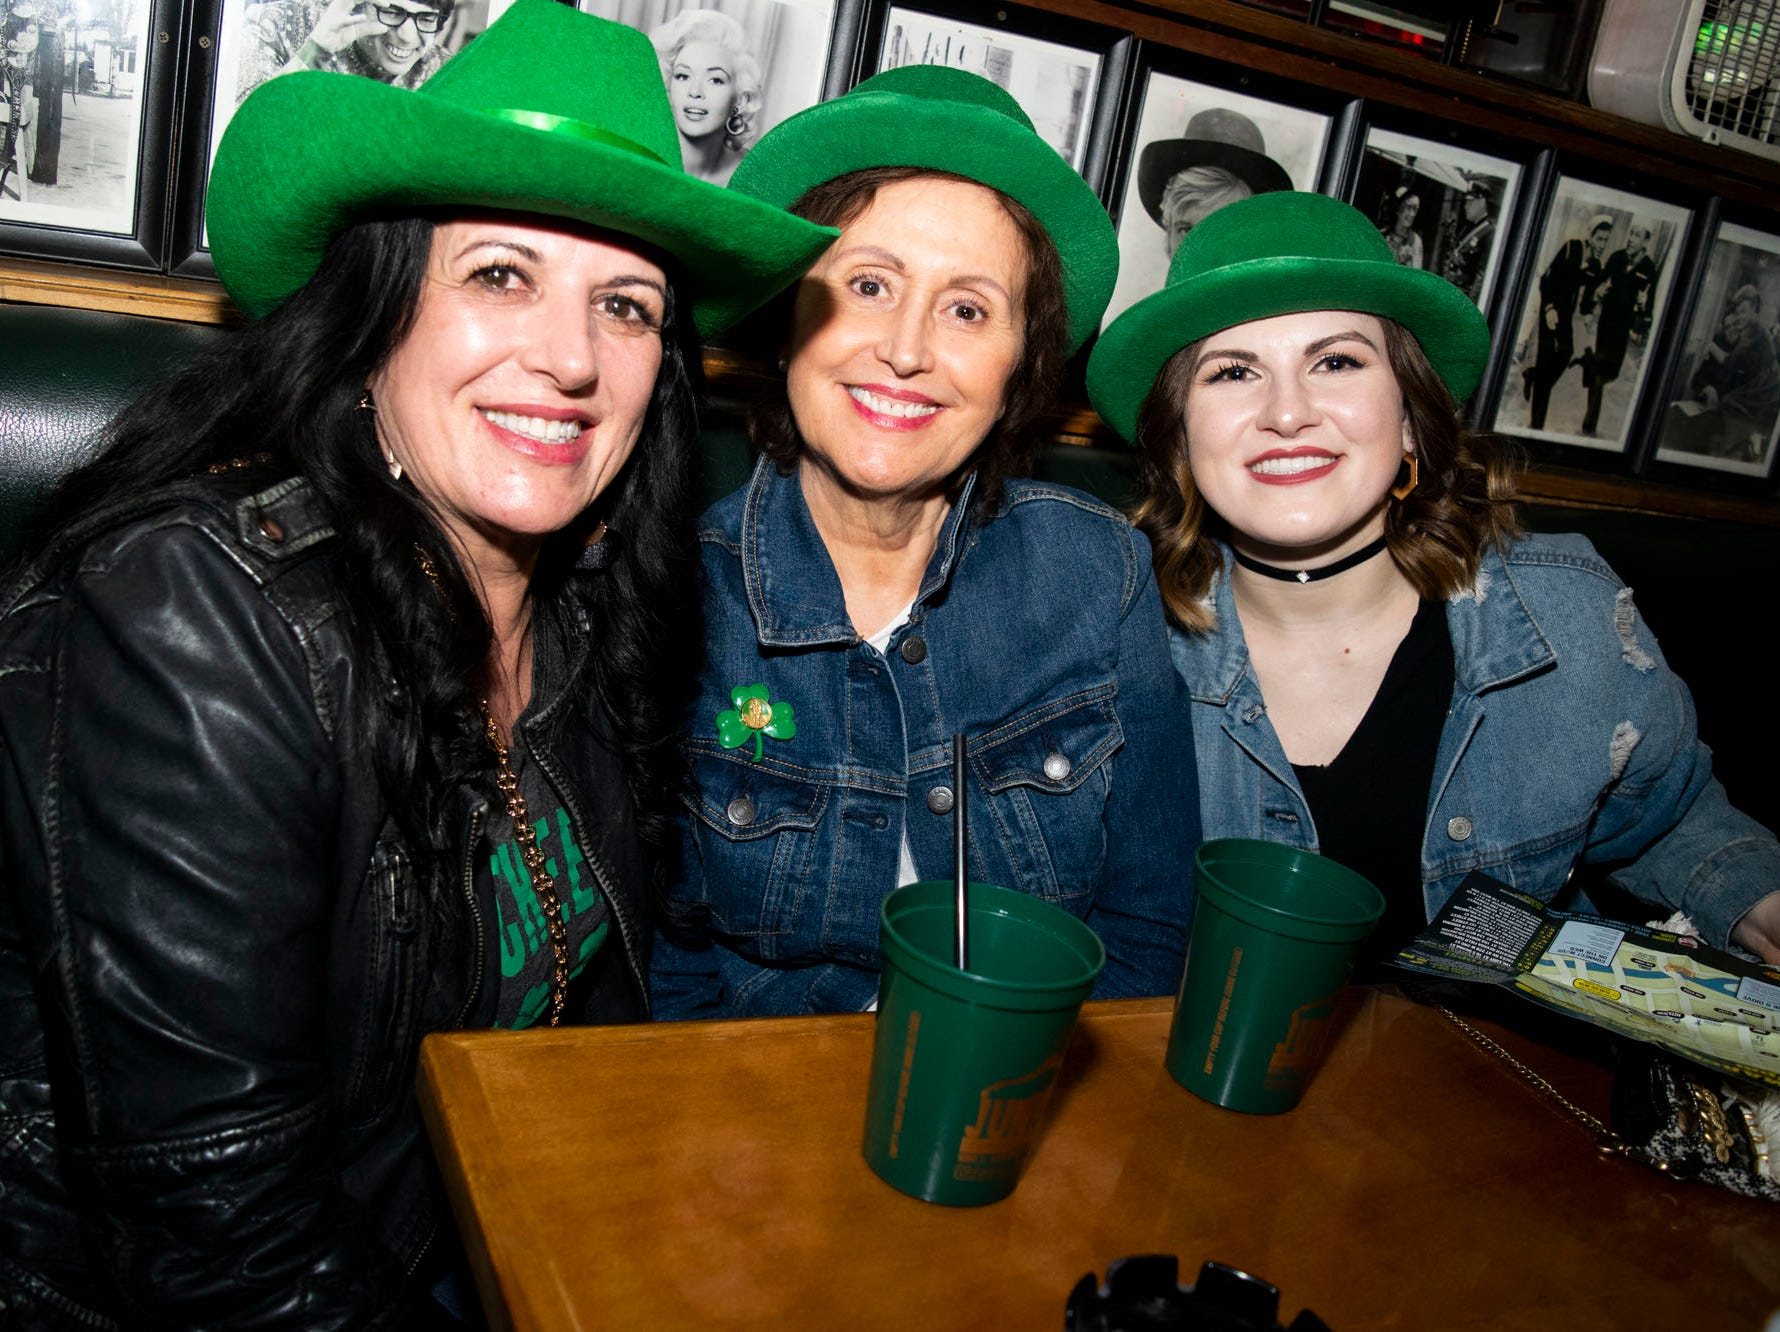 Lisa, Odette, and Devin attend the 2019 Leprechaun Crawl on Saturday, March 16, 2019. Reno, Nev.